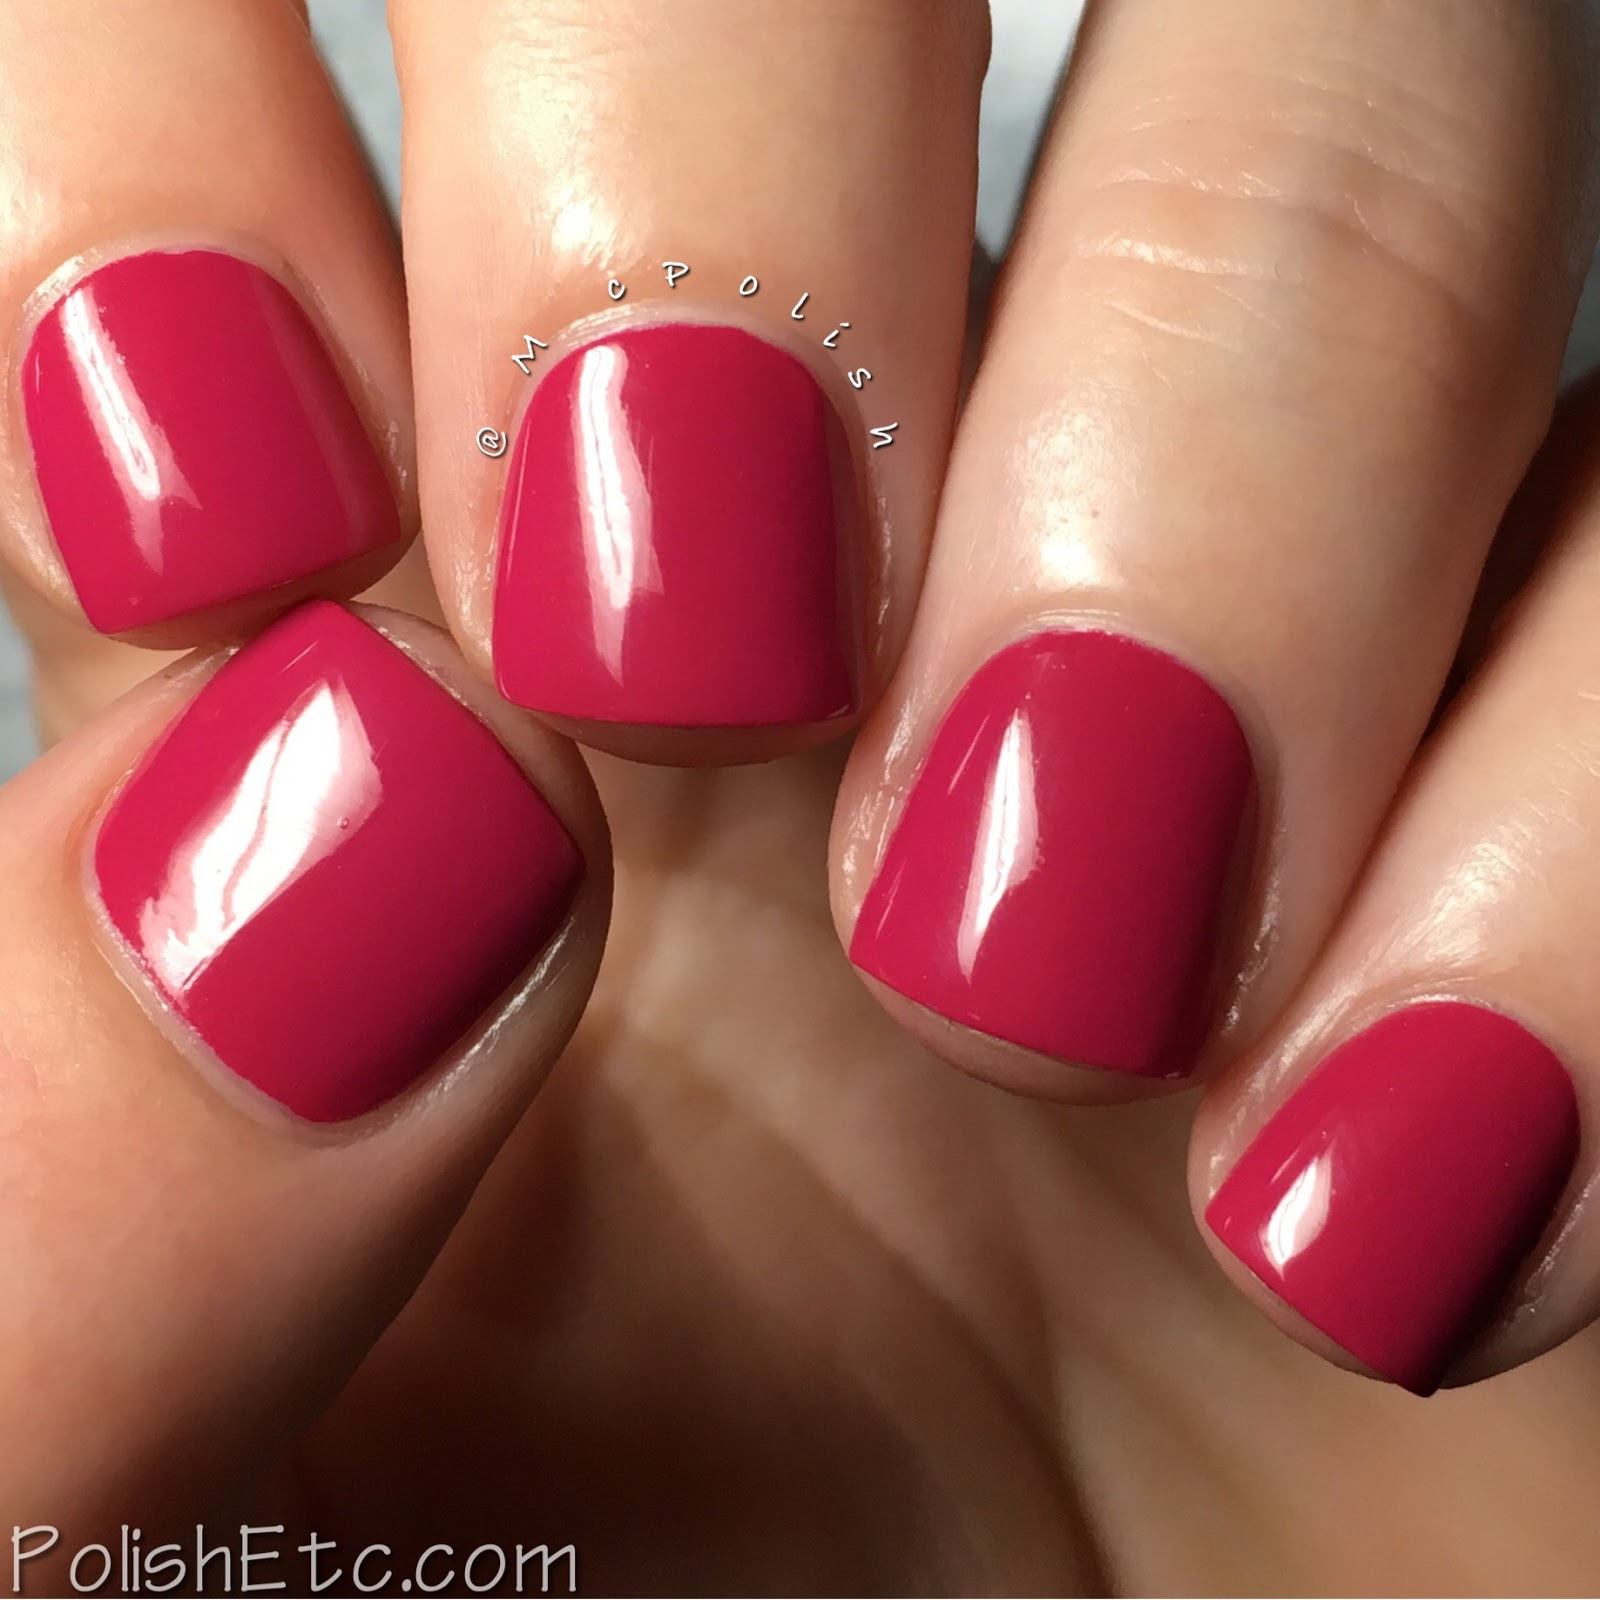 Essie's Spring 2017 Collection - McPolish - b'aha moment